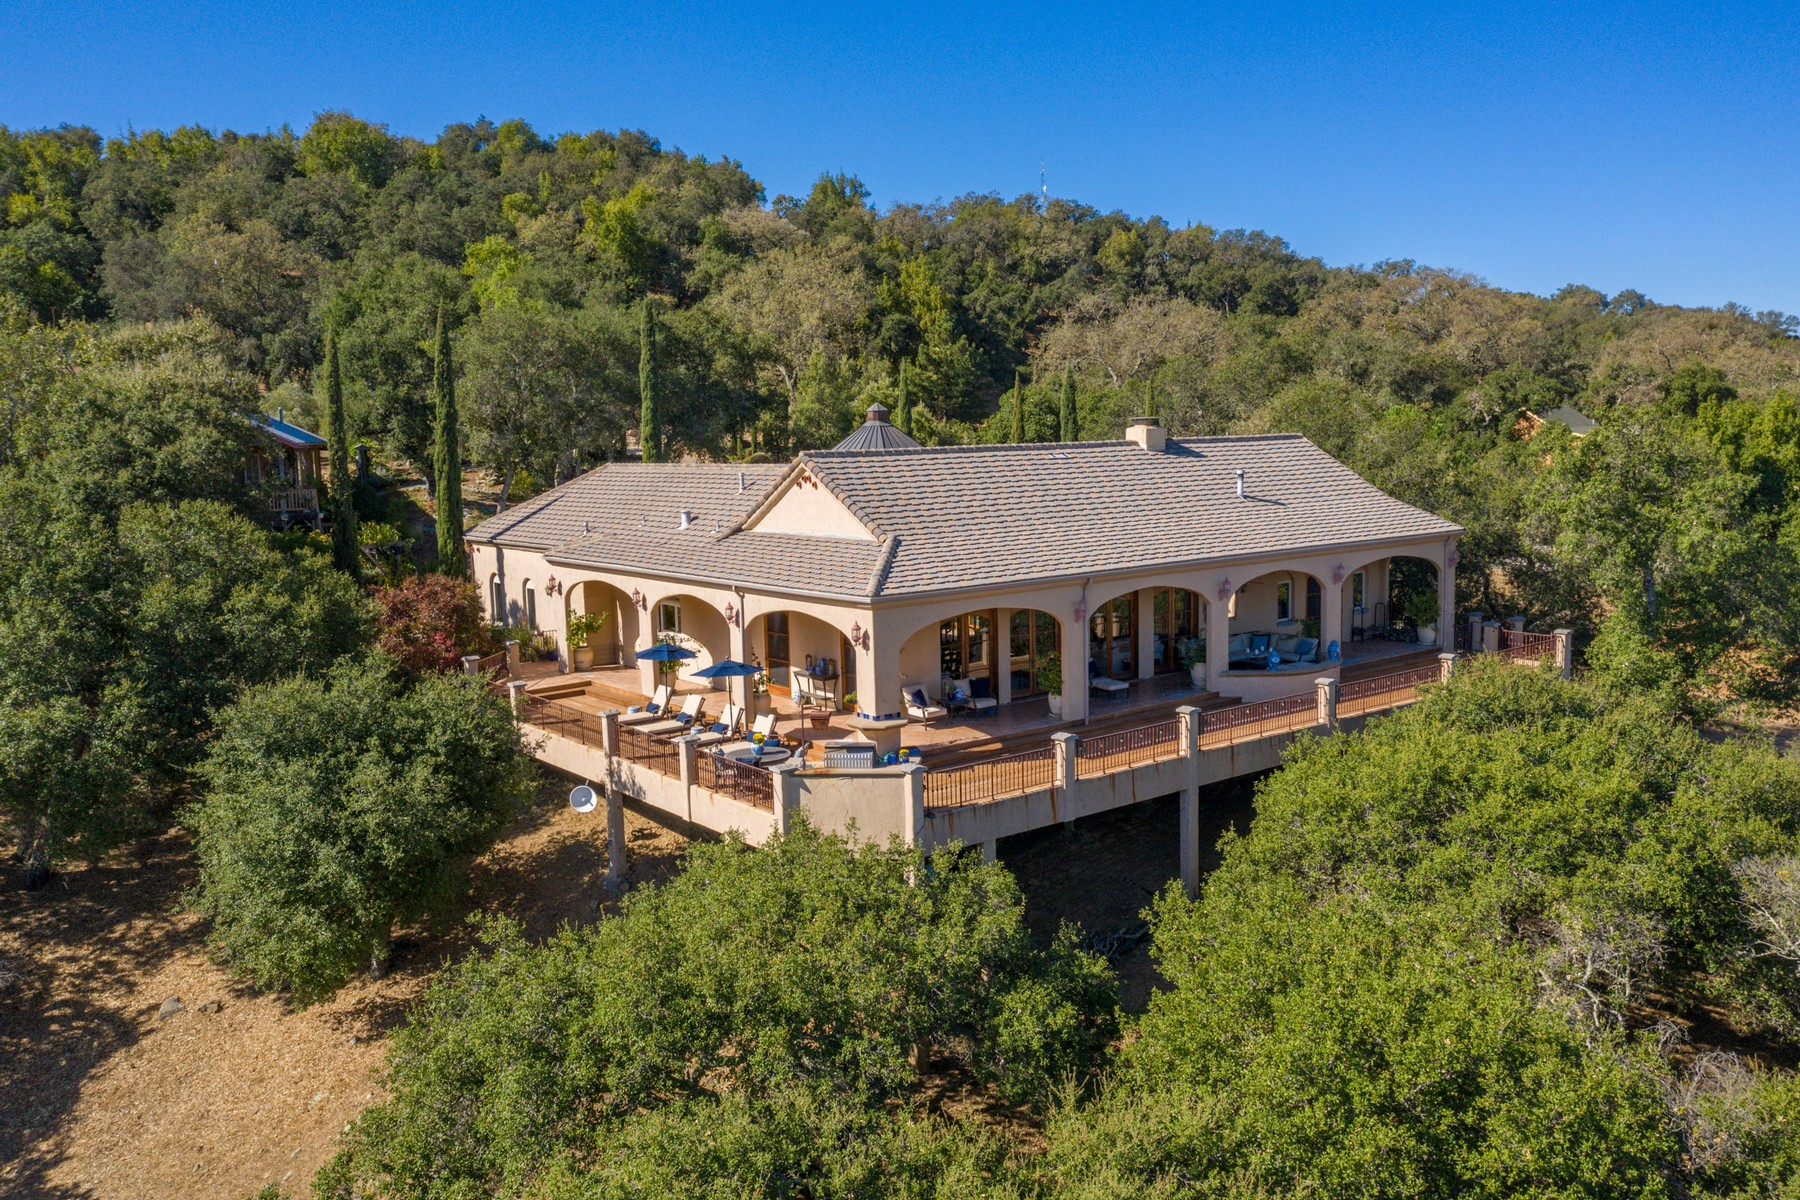 Single Family Homes for Sale at Private Estate with Guest House in Wine Country 3560 Sibley Lane Templeton, California 93465 United States